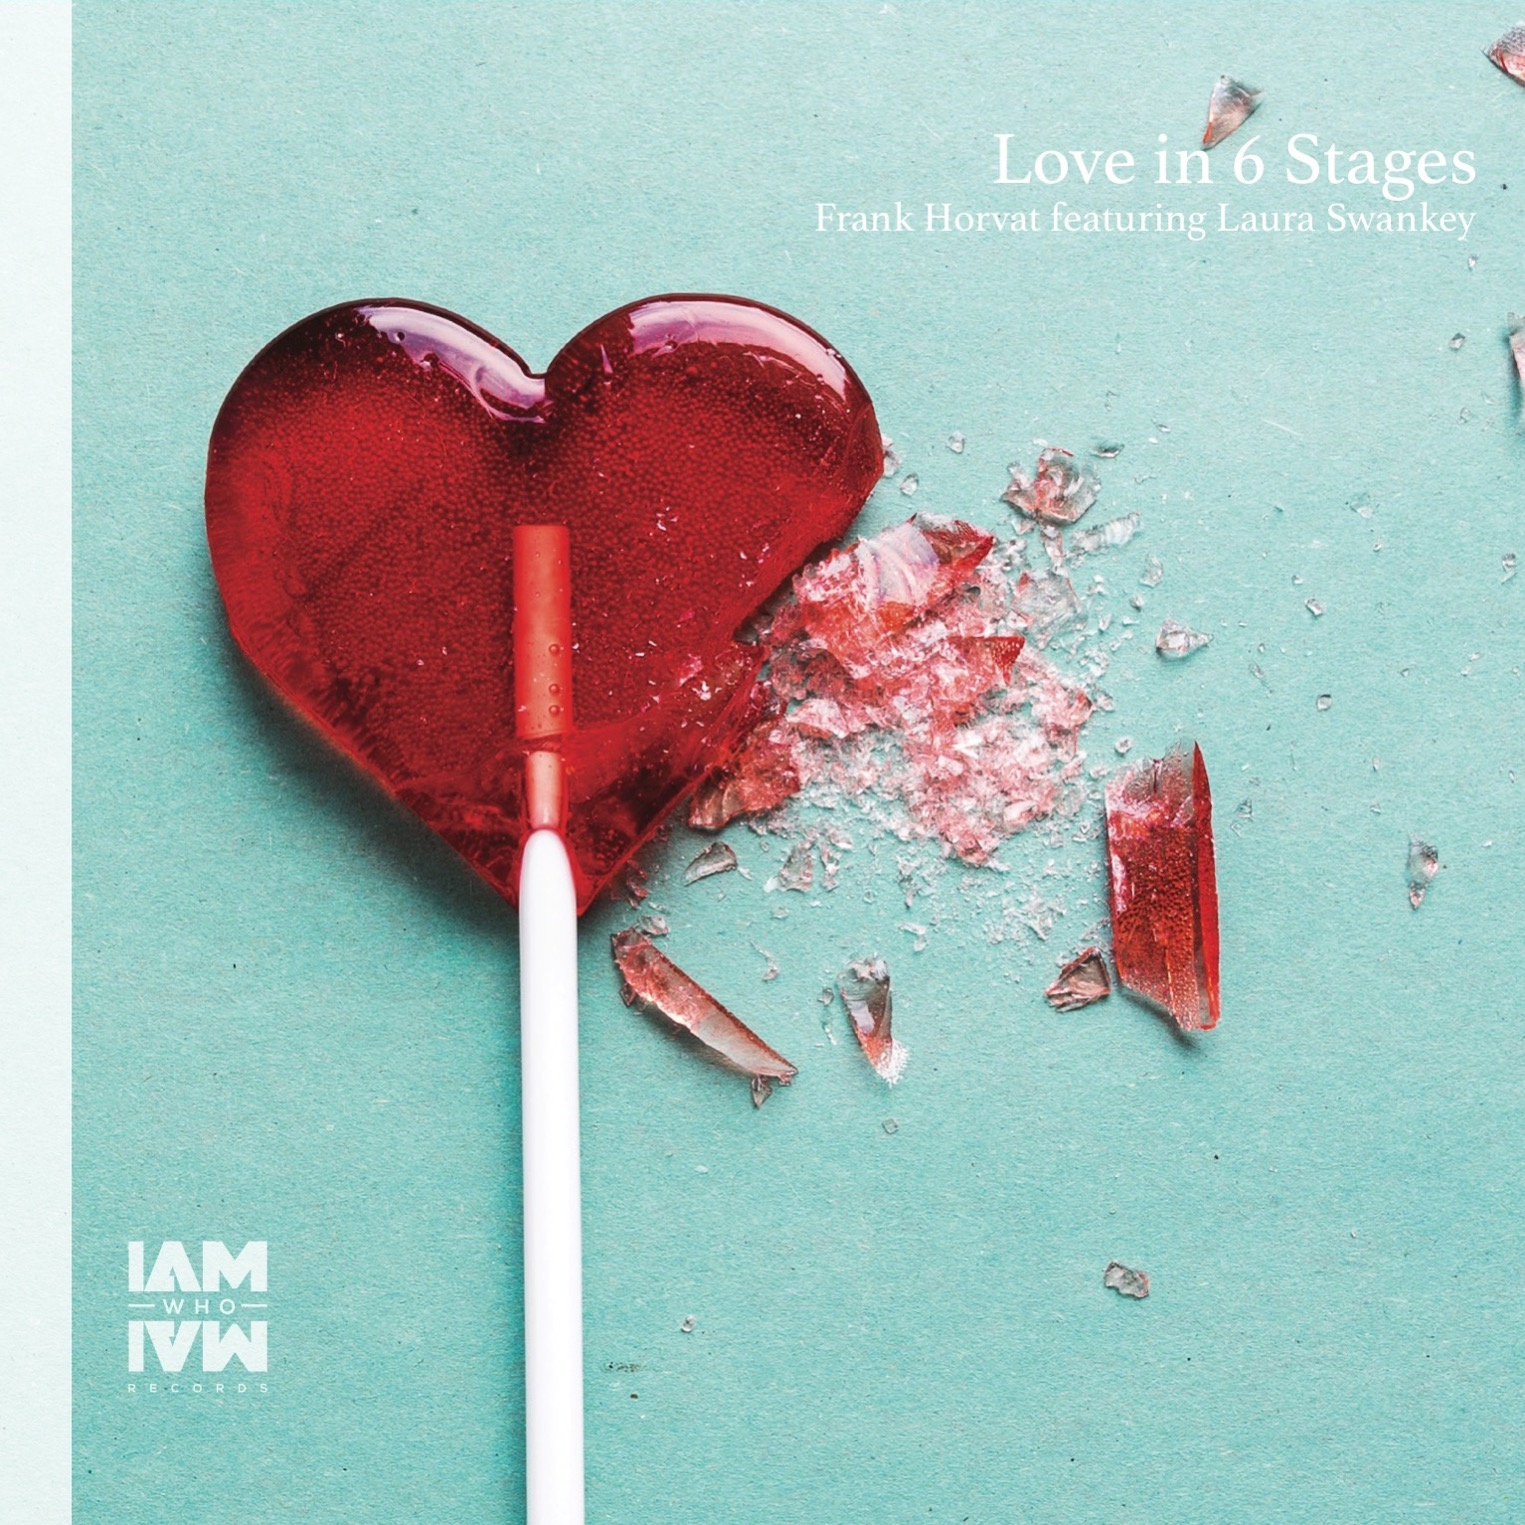 Album Release Day - Love in 6 Stages - Frank Horvat